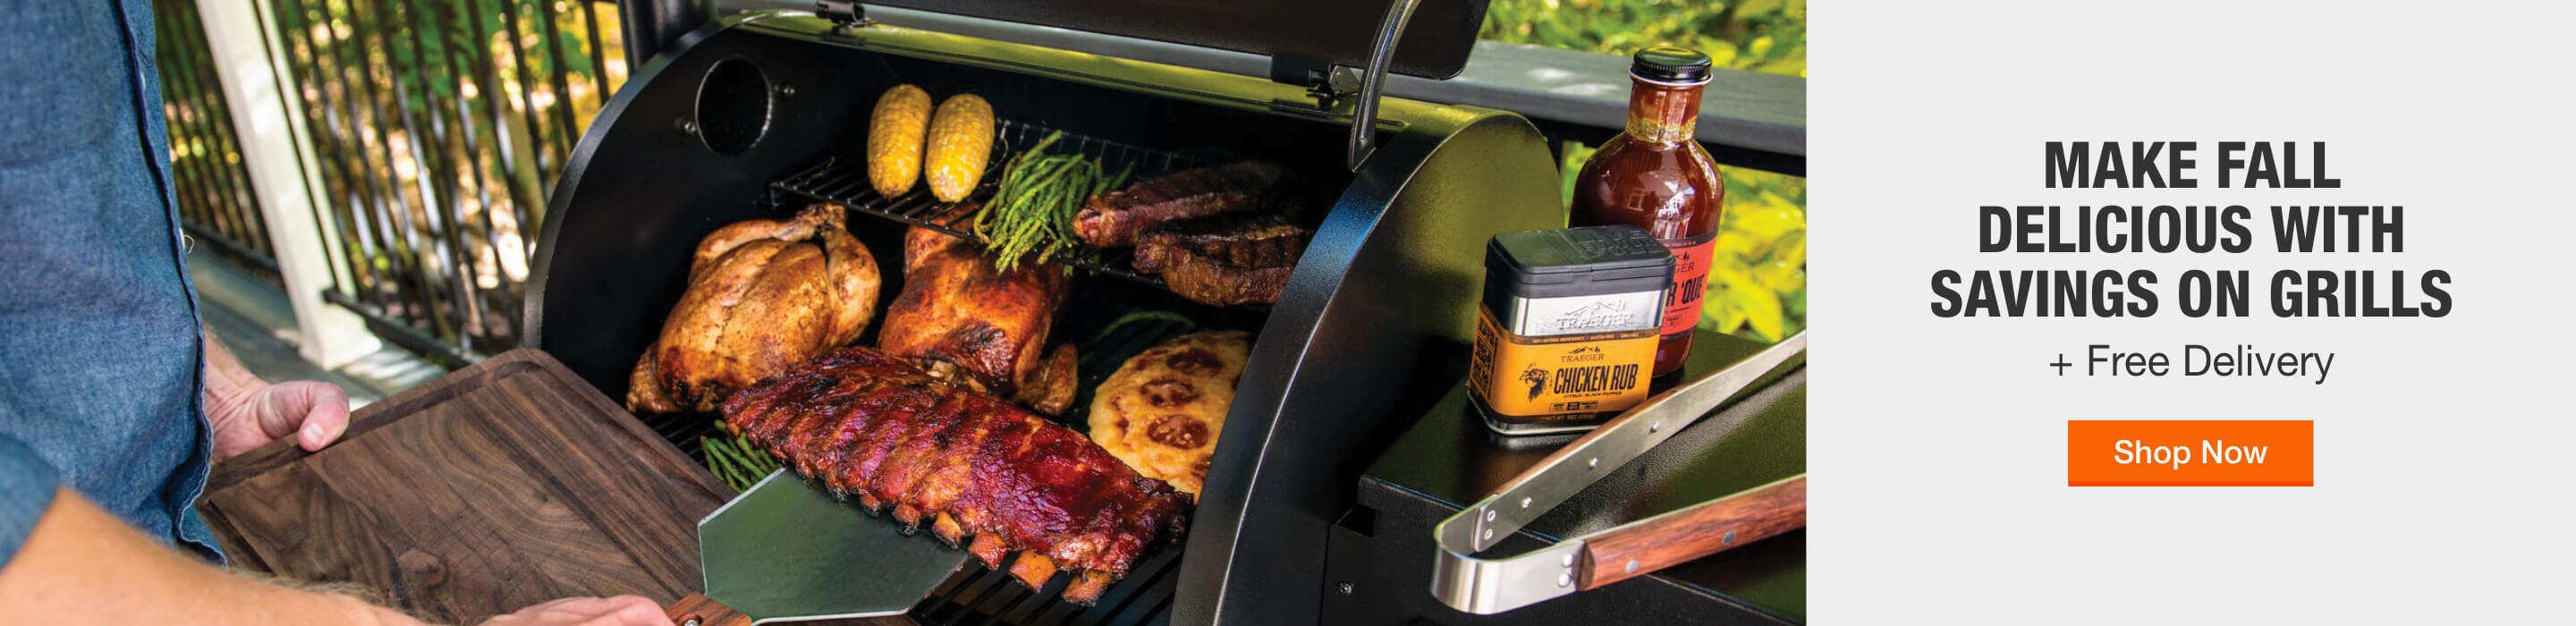 MAKE FALL DELICIOUS WITH SAVINGS ON GRILLS + Free Delivery. Shop Now